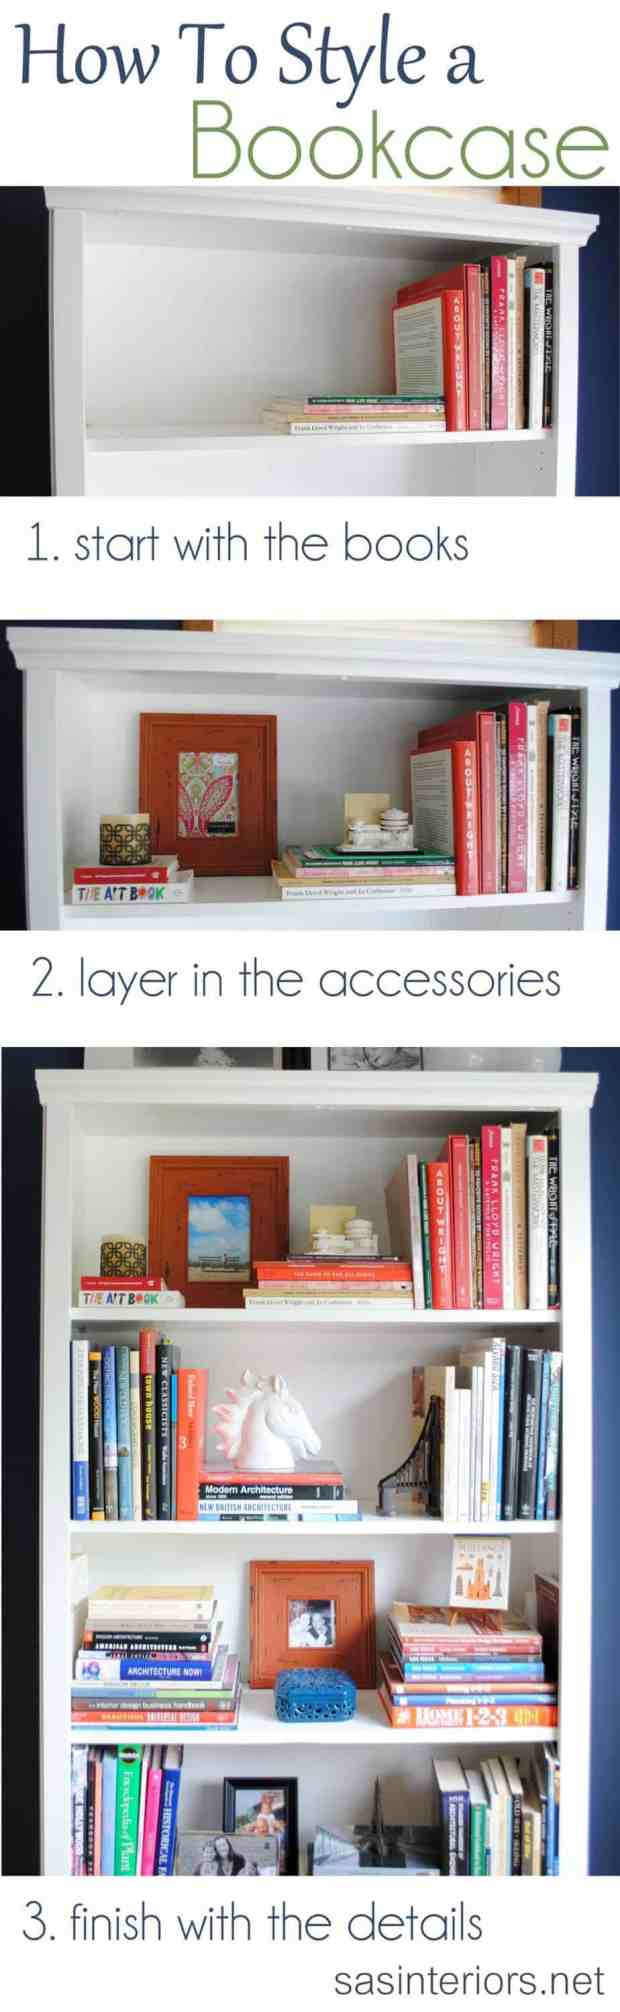 I am a librarian so I want to share 8 of my favorite fun and functional DIY bookcases you can make to house your own book collection. Happy reading!